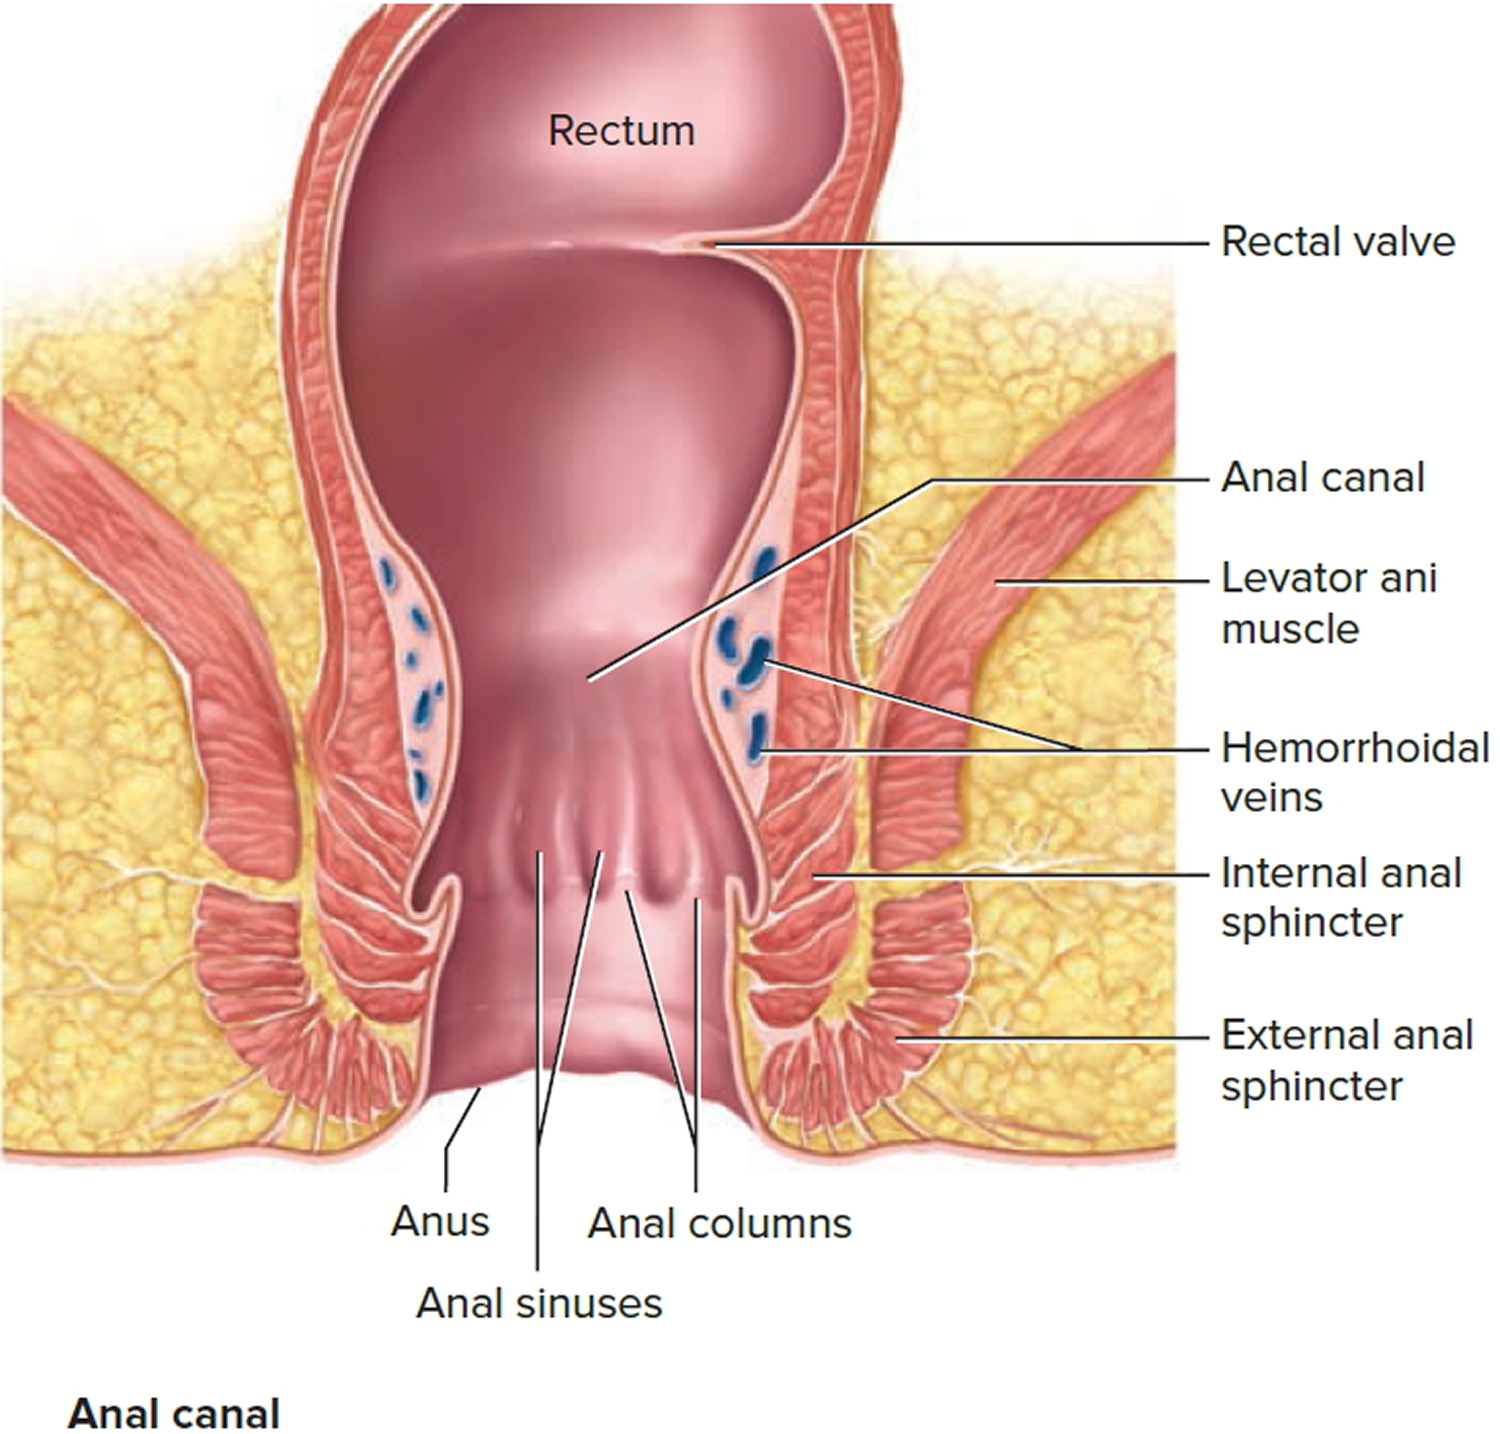 Colon line near anus